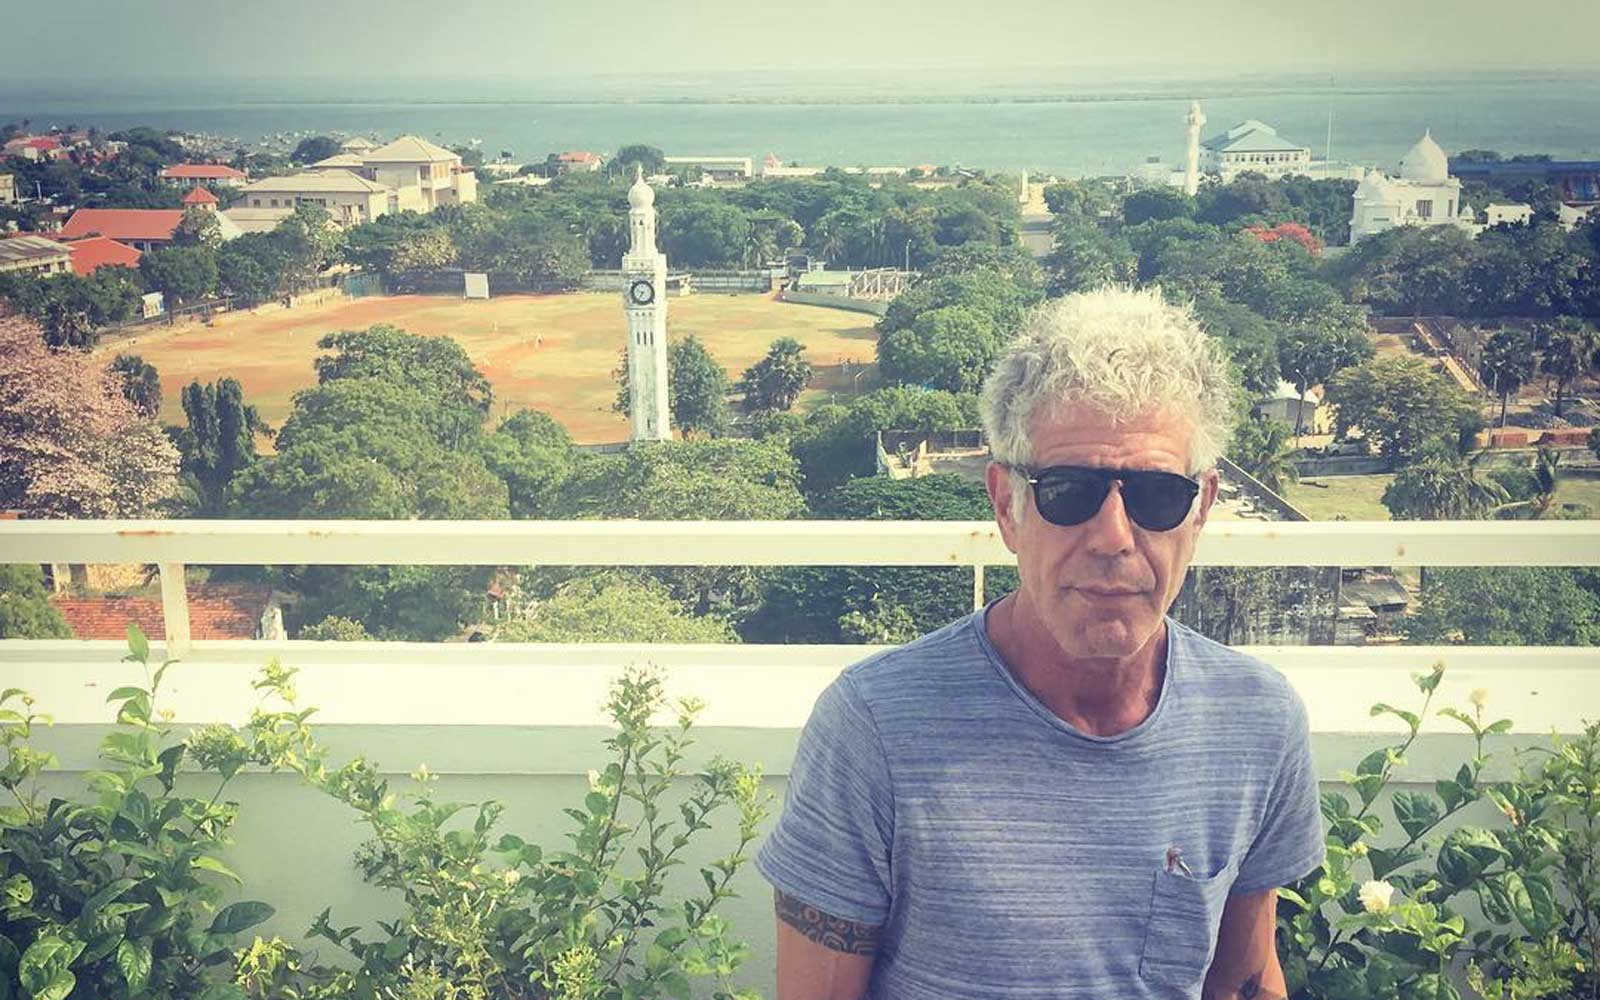 The Surprisingly Boring Thing Anthony Bourdain Loves to Do When He's Not Traveling